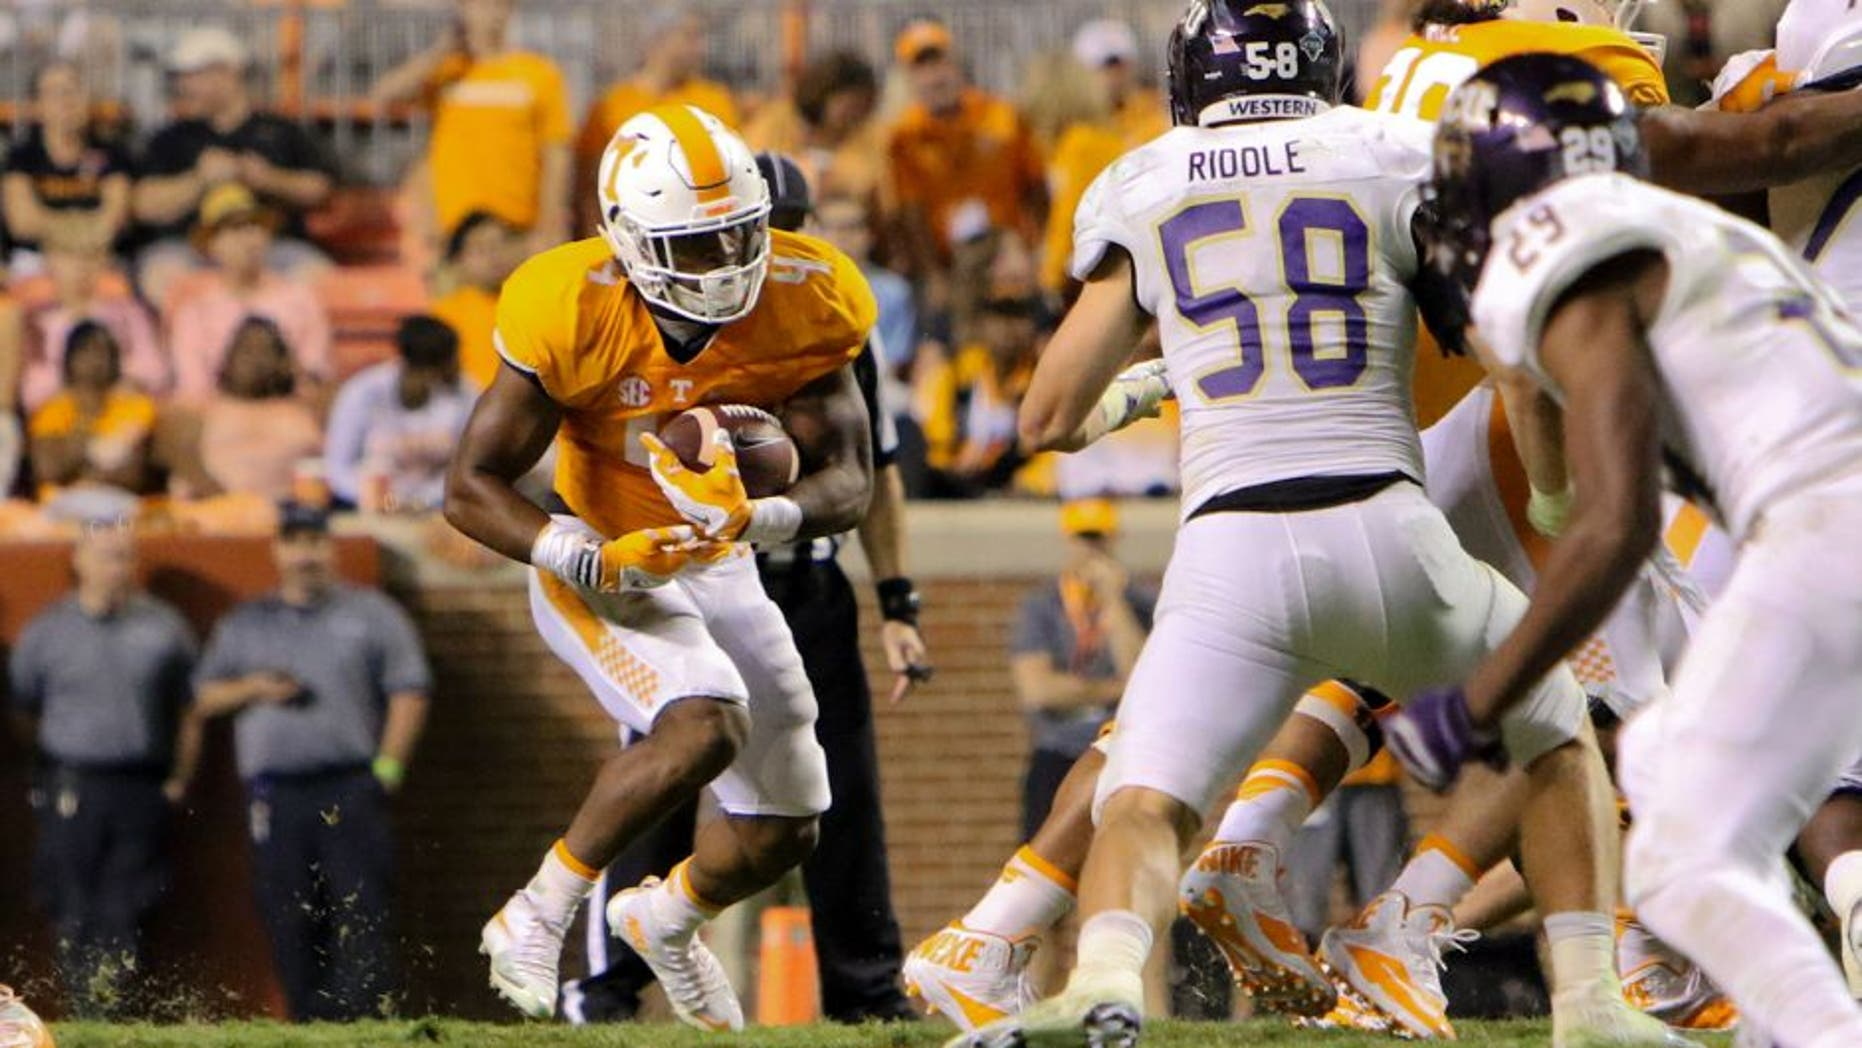 Sep 19, 2015; Knoxville, TN, USA; Tennessee Volunteers running back John Kelly (4) runs the ball during the second half against the Western Carolina Catamounts at Neyland Stadium. Tennessee won 55 to10. Mandatory Credit: Randy Sartin-USA TODAY Sports